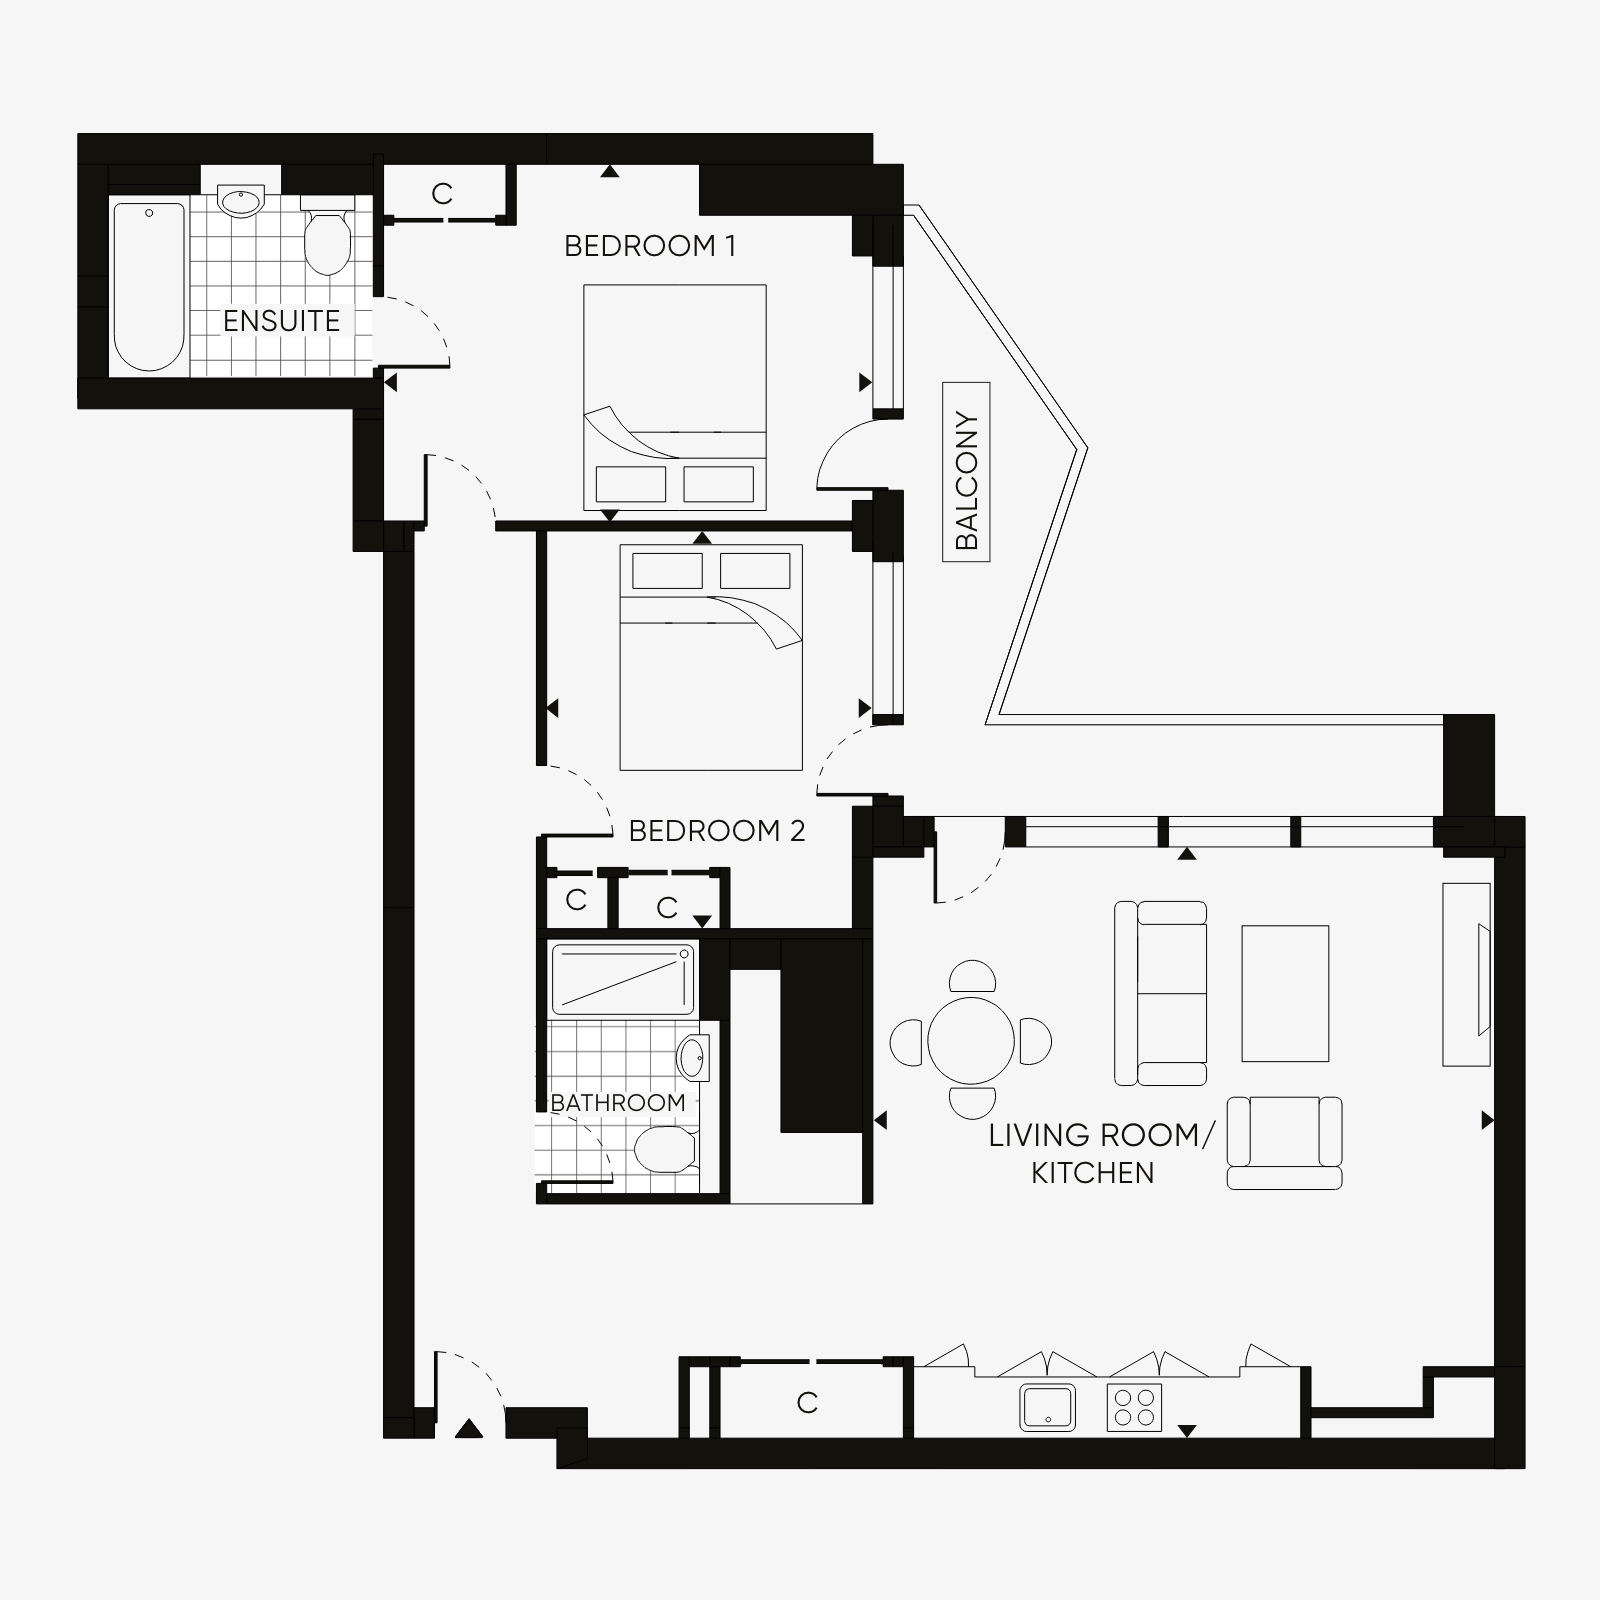 Two bedroom type 5